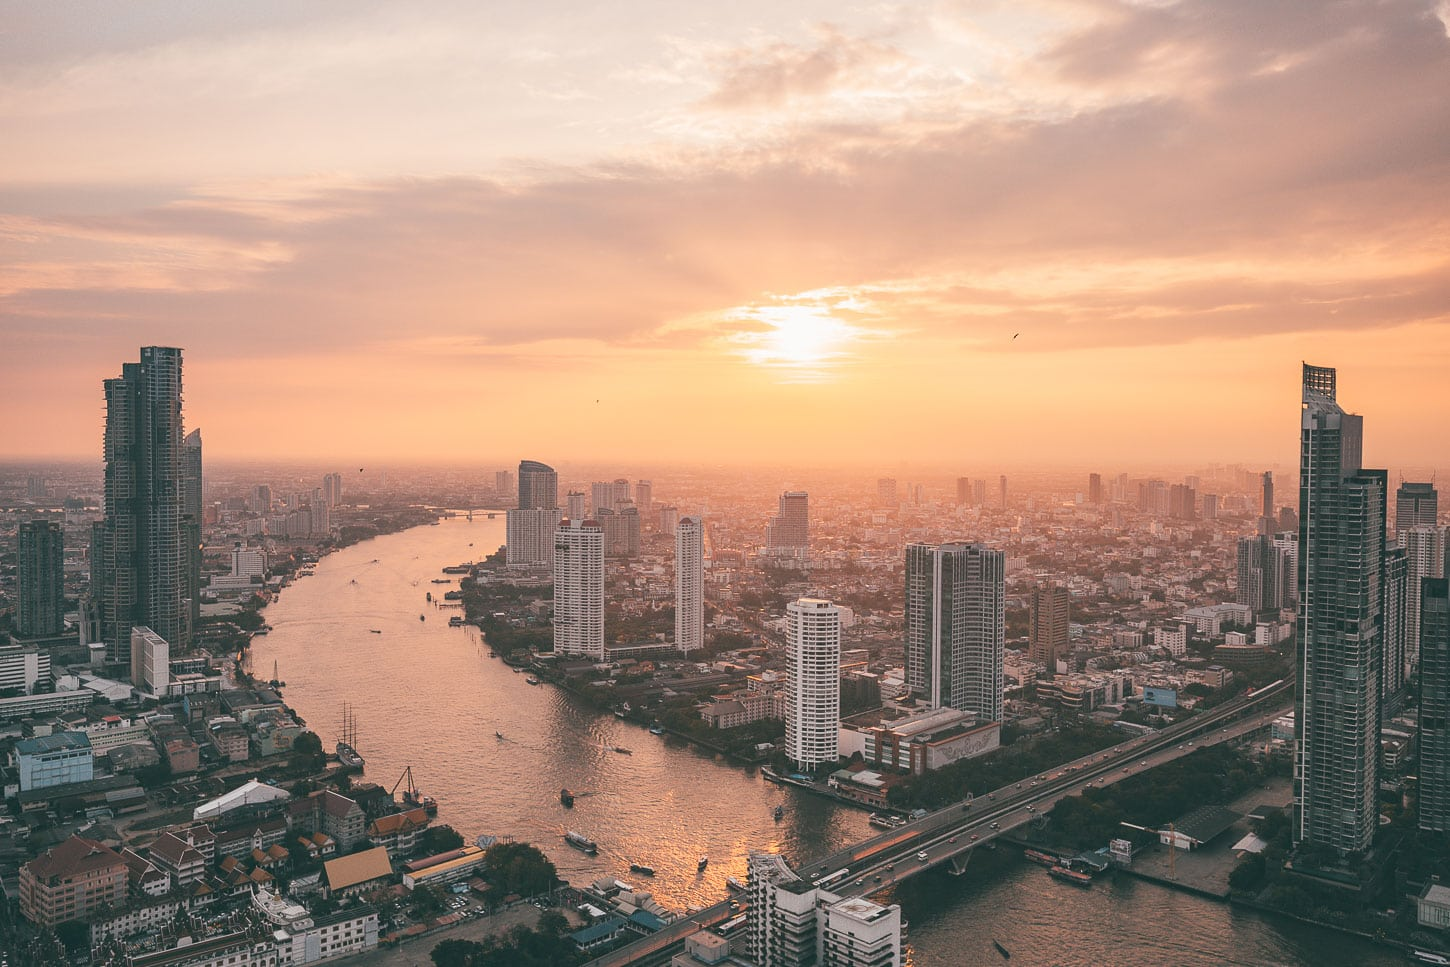 View from Lebua State Tower over the Chao Phraya river in Bangkok at sunset